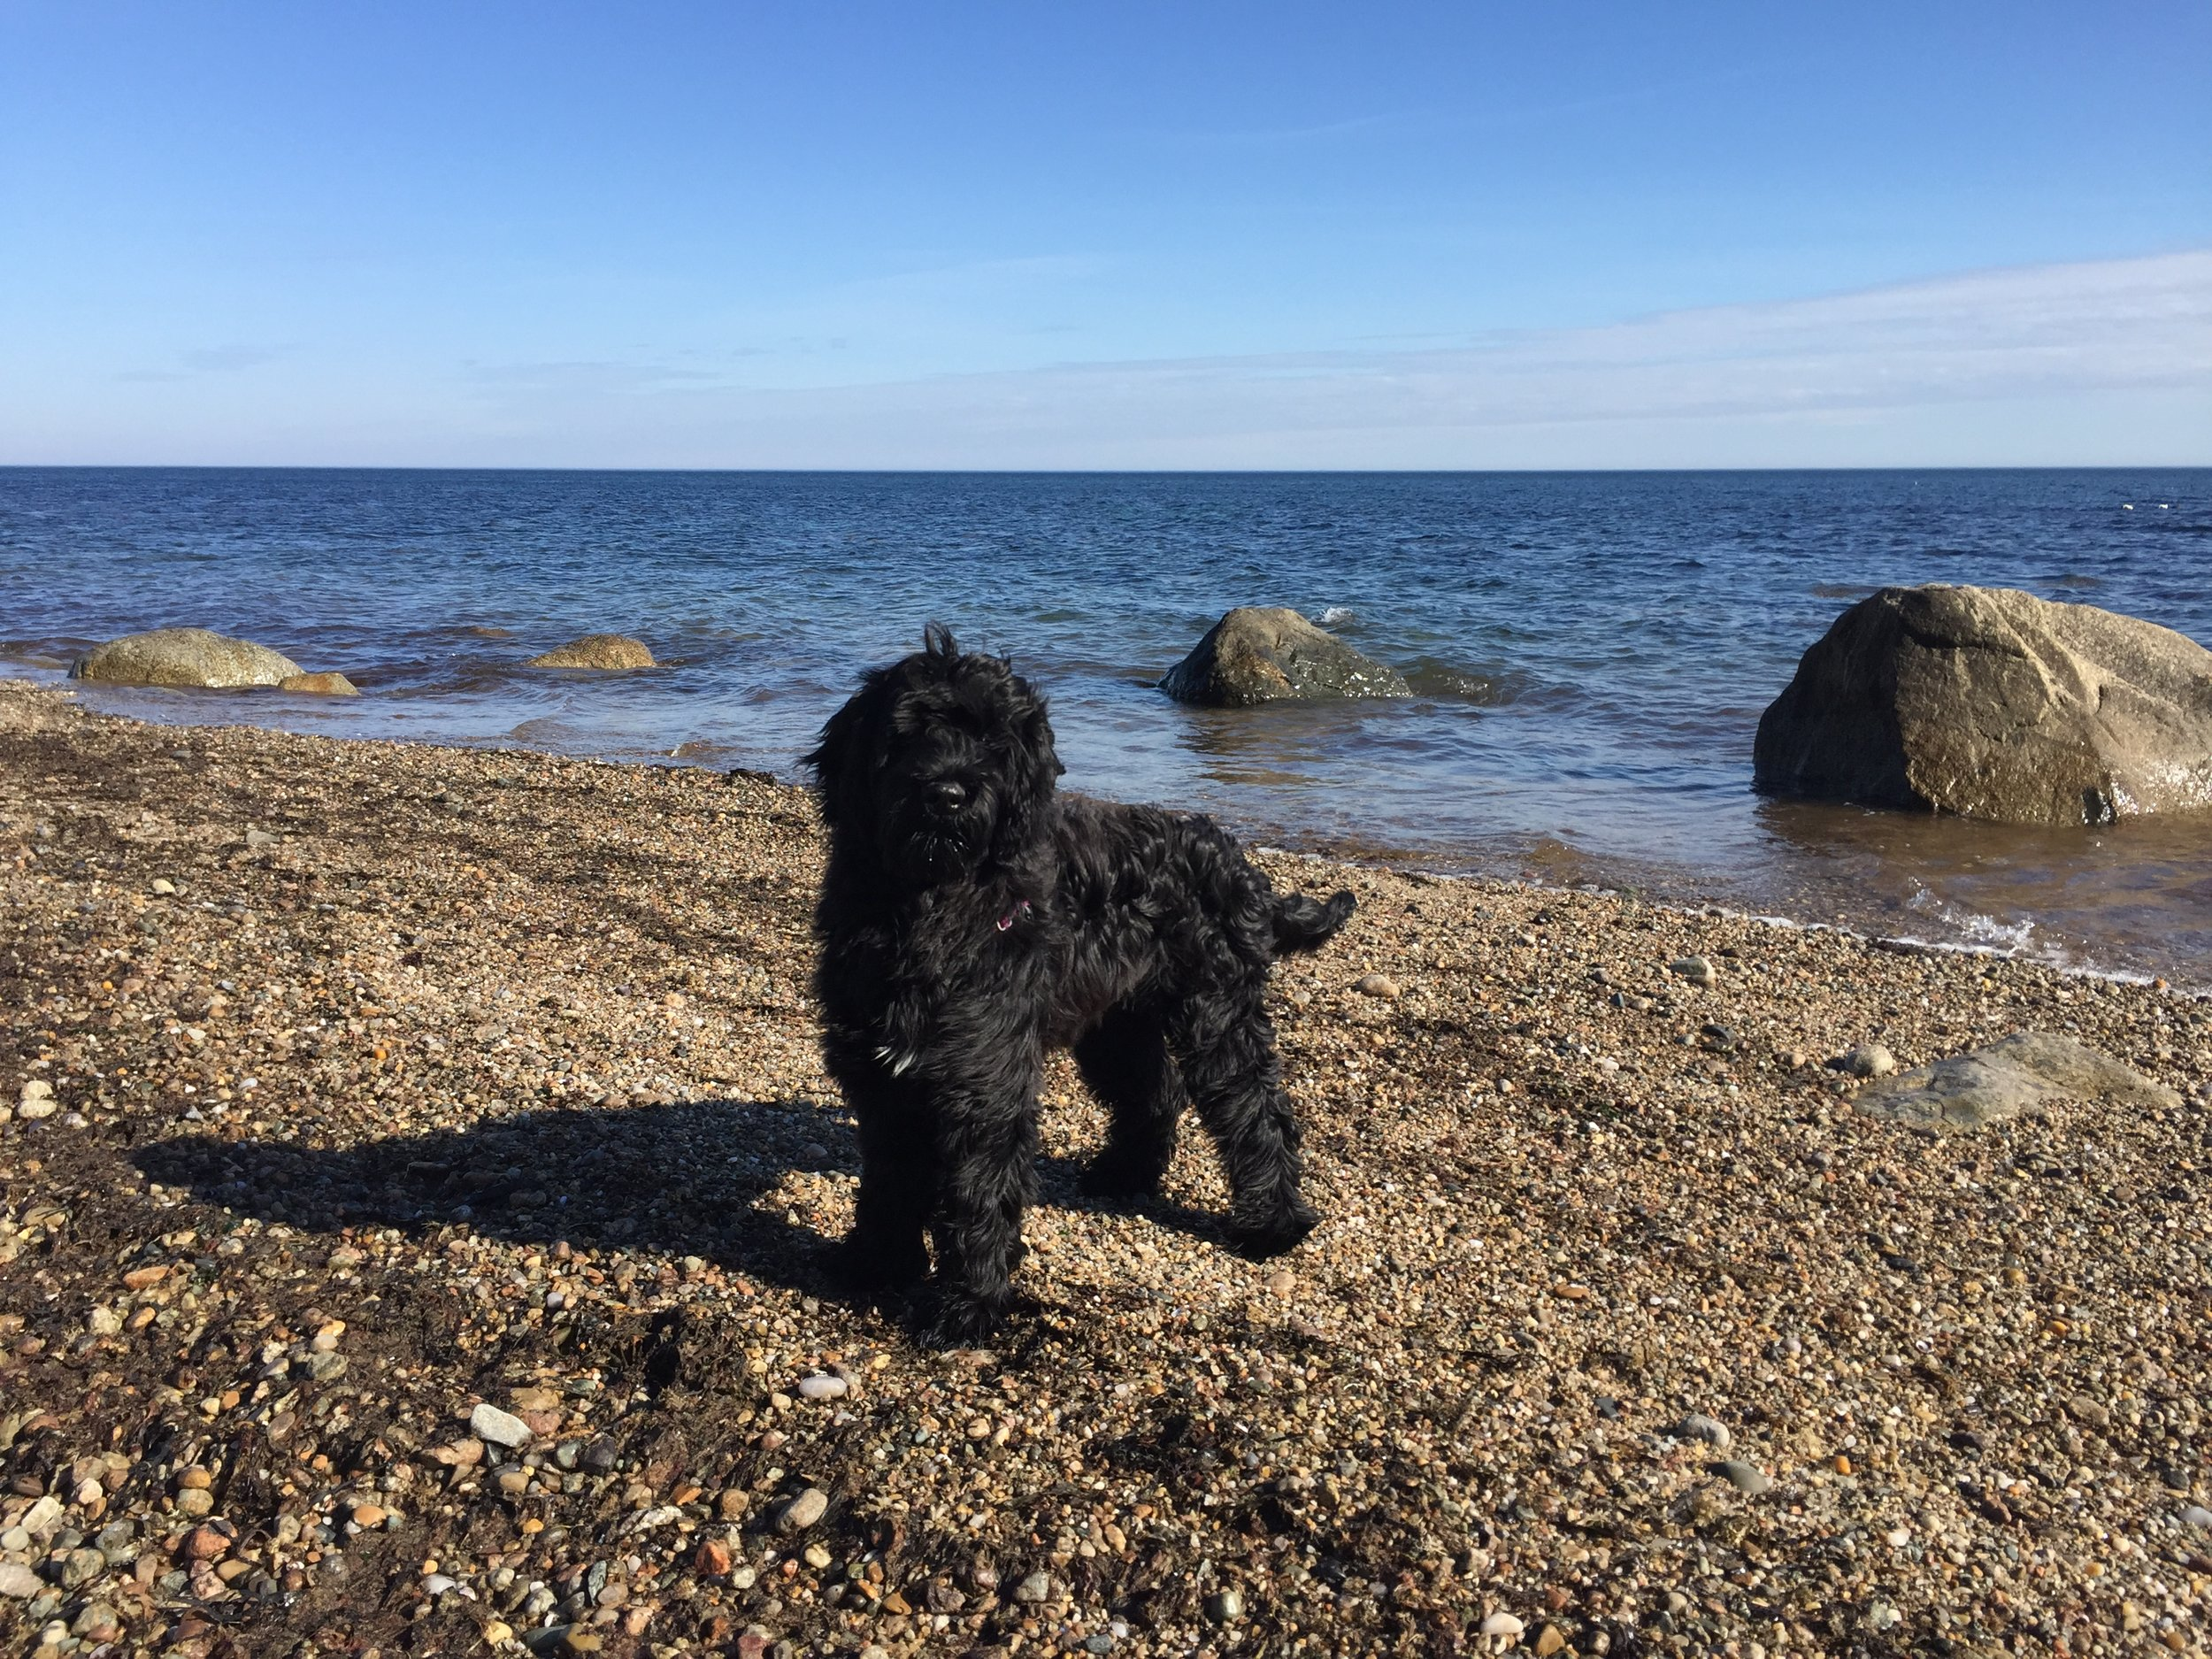 Zola, OPAK Ambassador and Plankton Collector-in-Residence - Zola is a Portuguese Water Dog and a loving member of the OPAK Team. You will find her hanging out at OPAK events, swimming on the beaches of Cape Cod and trying to conduct plankton tows by herself.